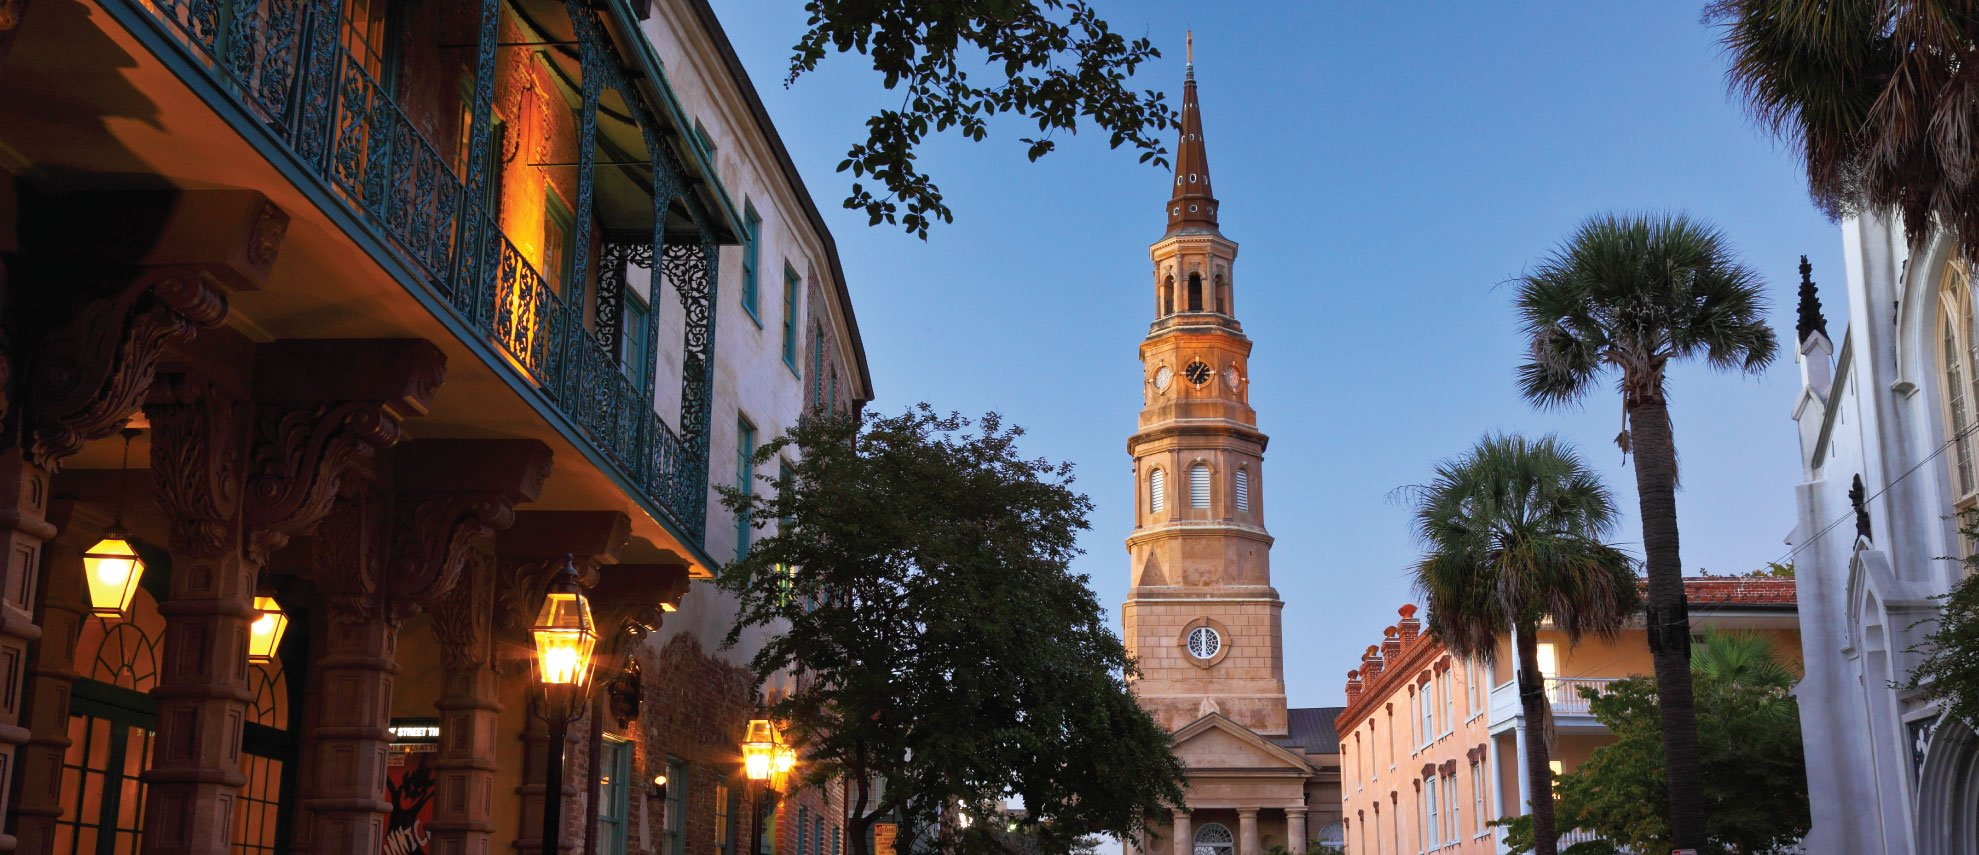 Charleston, SC | Official Site for Charleston Vacations ... on charleston map attractions, charleston tourist map, charleston sc overview, georgetown sc historic district map, charleston old slave mart, historic homes charleston sc map, charleston street map, u.s. post office and courthouse, charleston sc sightseeing maps, charleston south carolina, charleston sc hotels historic district, charleston nc map, philadelphia historic district map, french quarter, phoenix historic district map, exchange and provost, the citadel, charleston peninsula map, charleston on a map, allentown pa historic district map, charleston sc beaches,